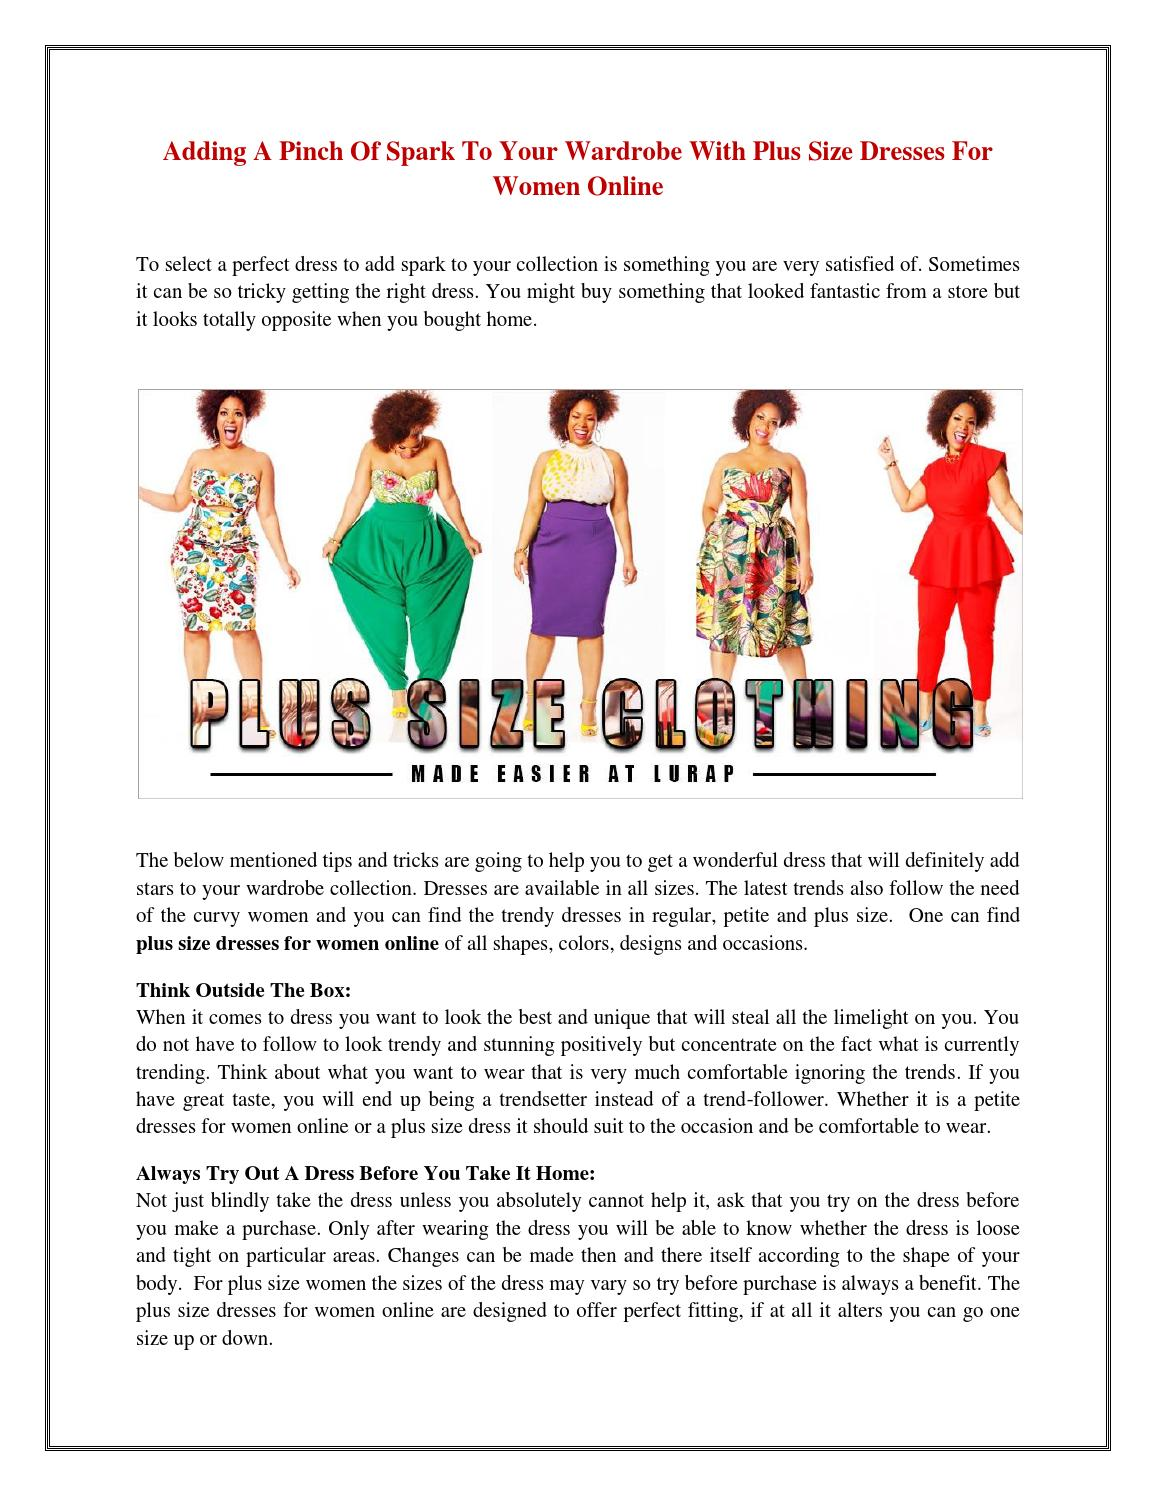 a97e352c7 Adding a pinch of spark to your wardrobe with plus size dresses for women  online by Lurap Fashion - issuu